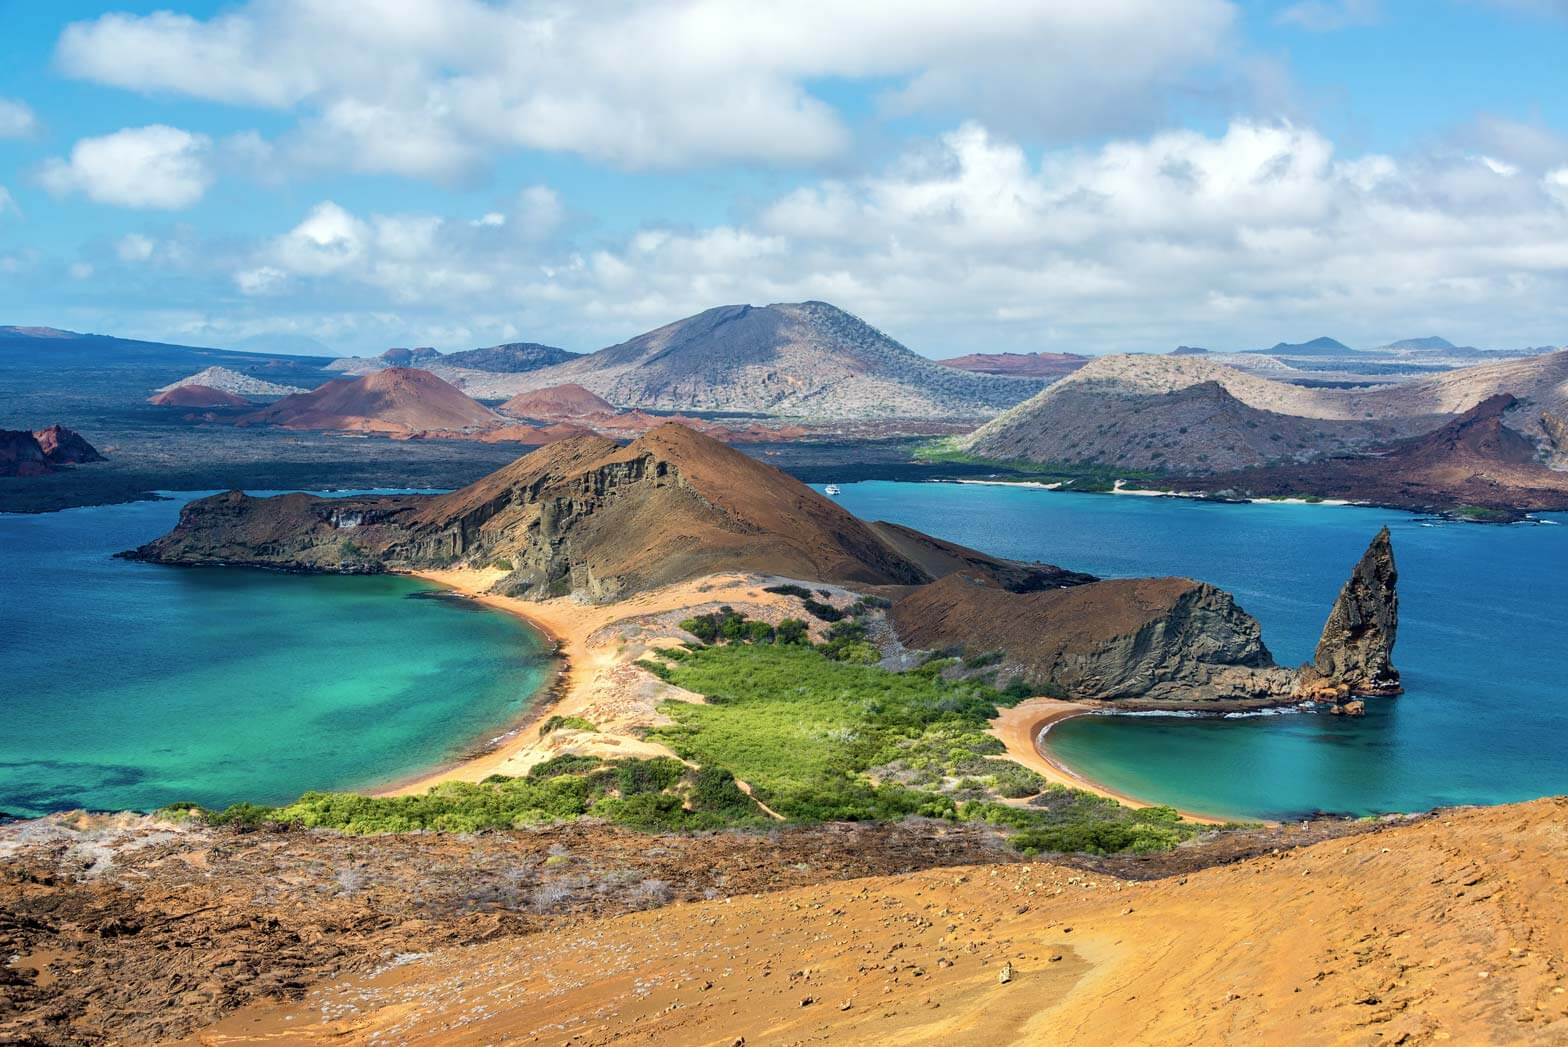 The Galapagos Islands in Ecuador